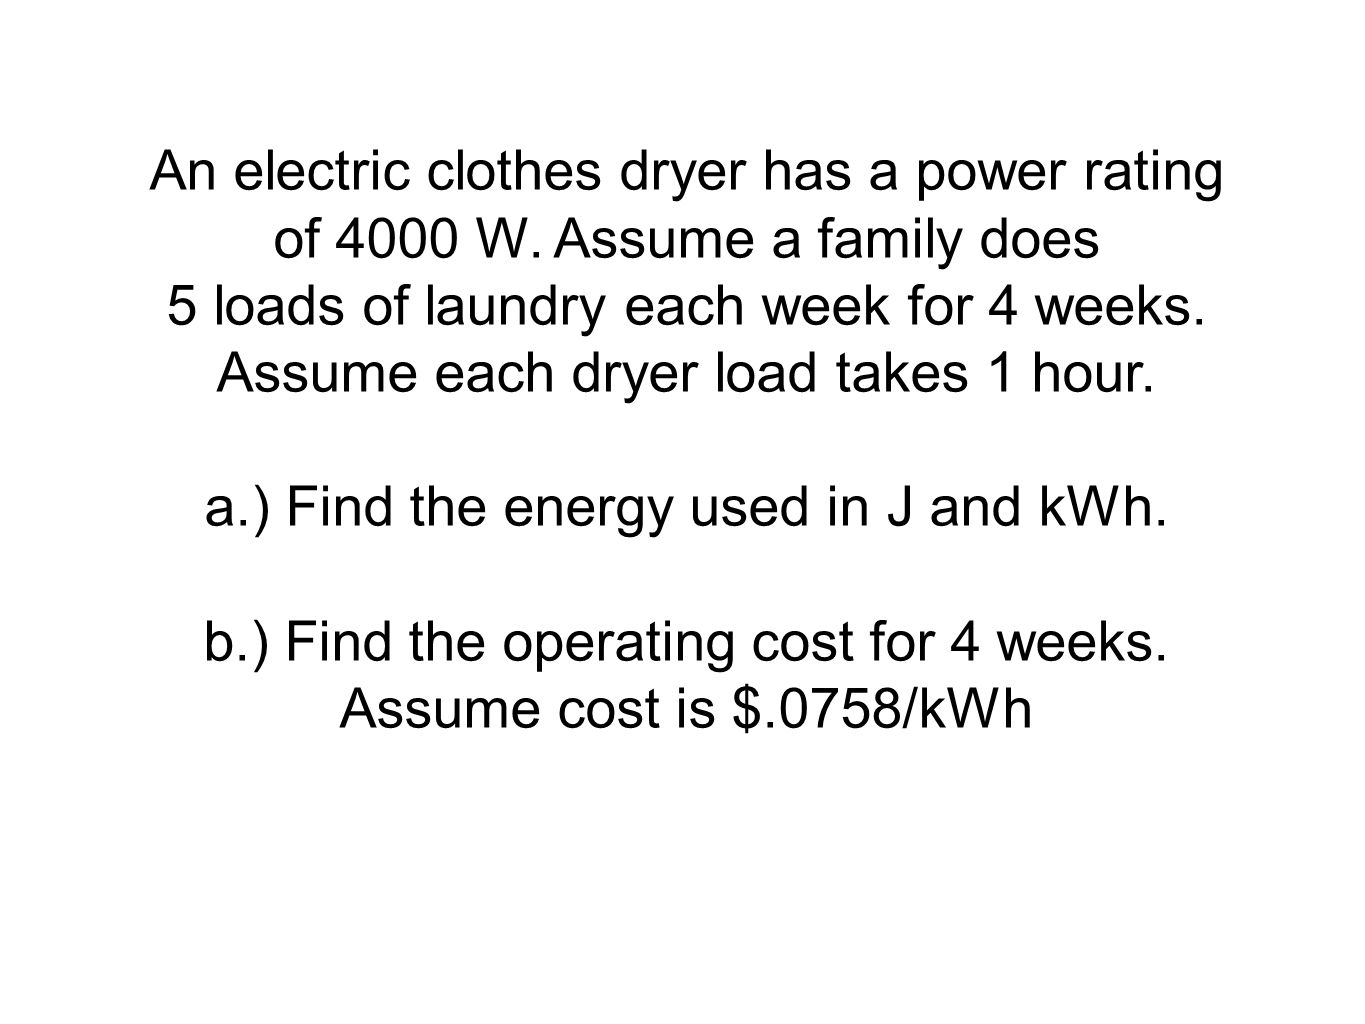 a.) Find the energy used in J and kWh.